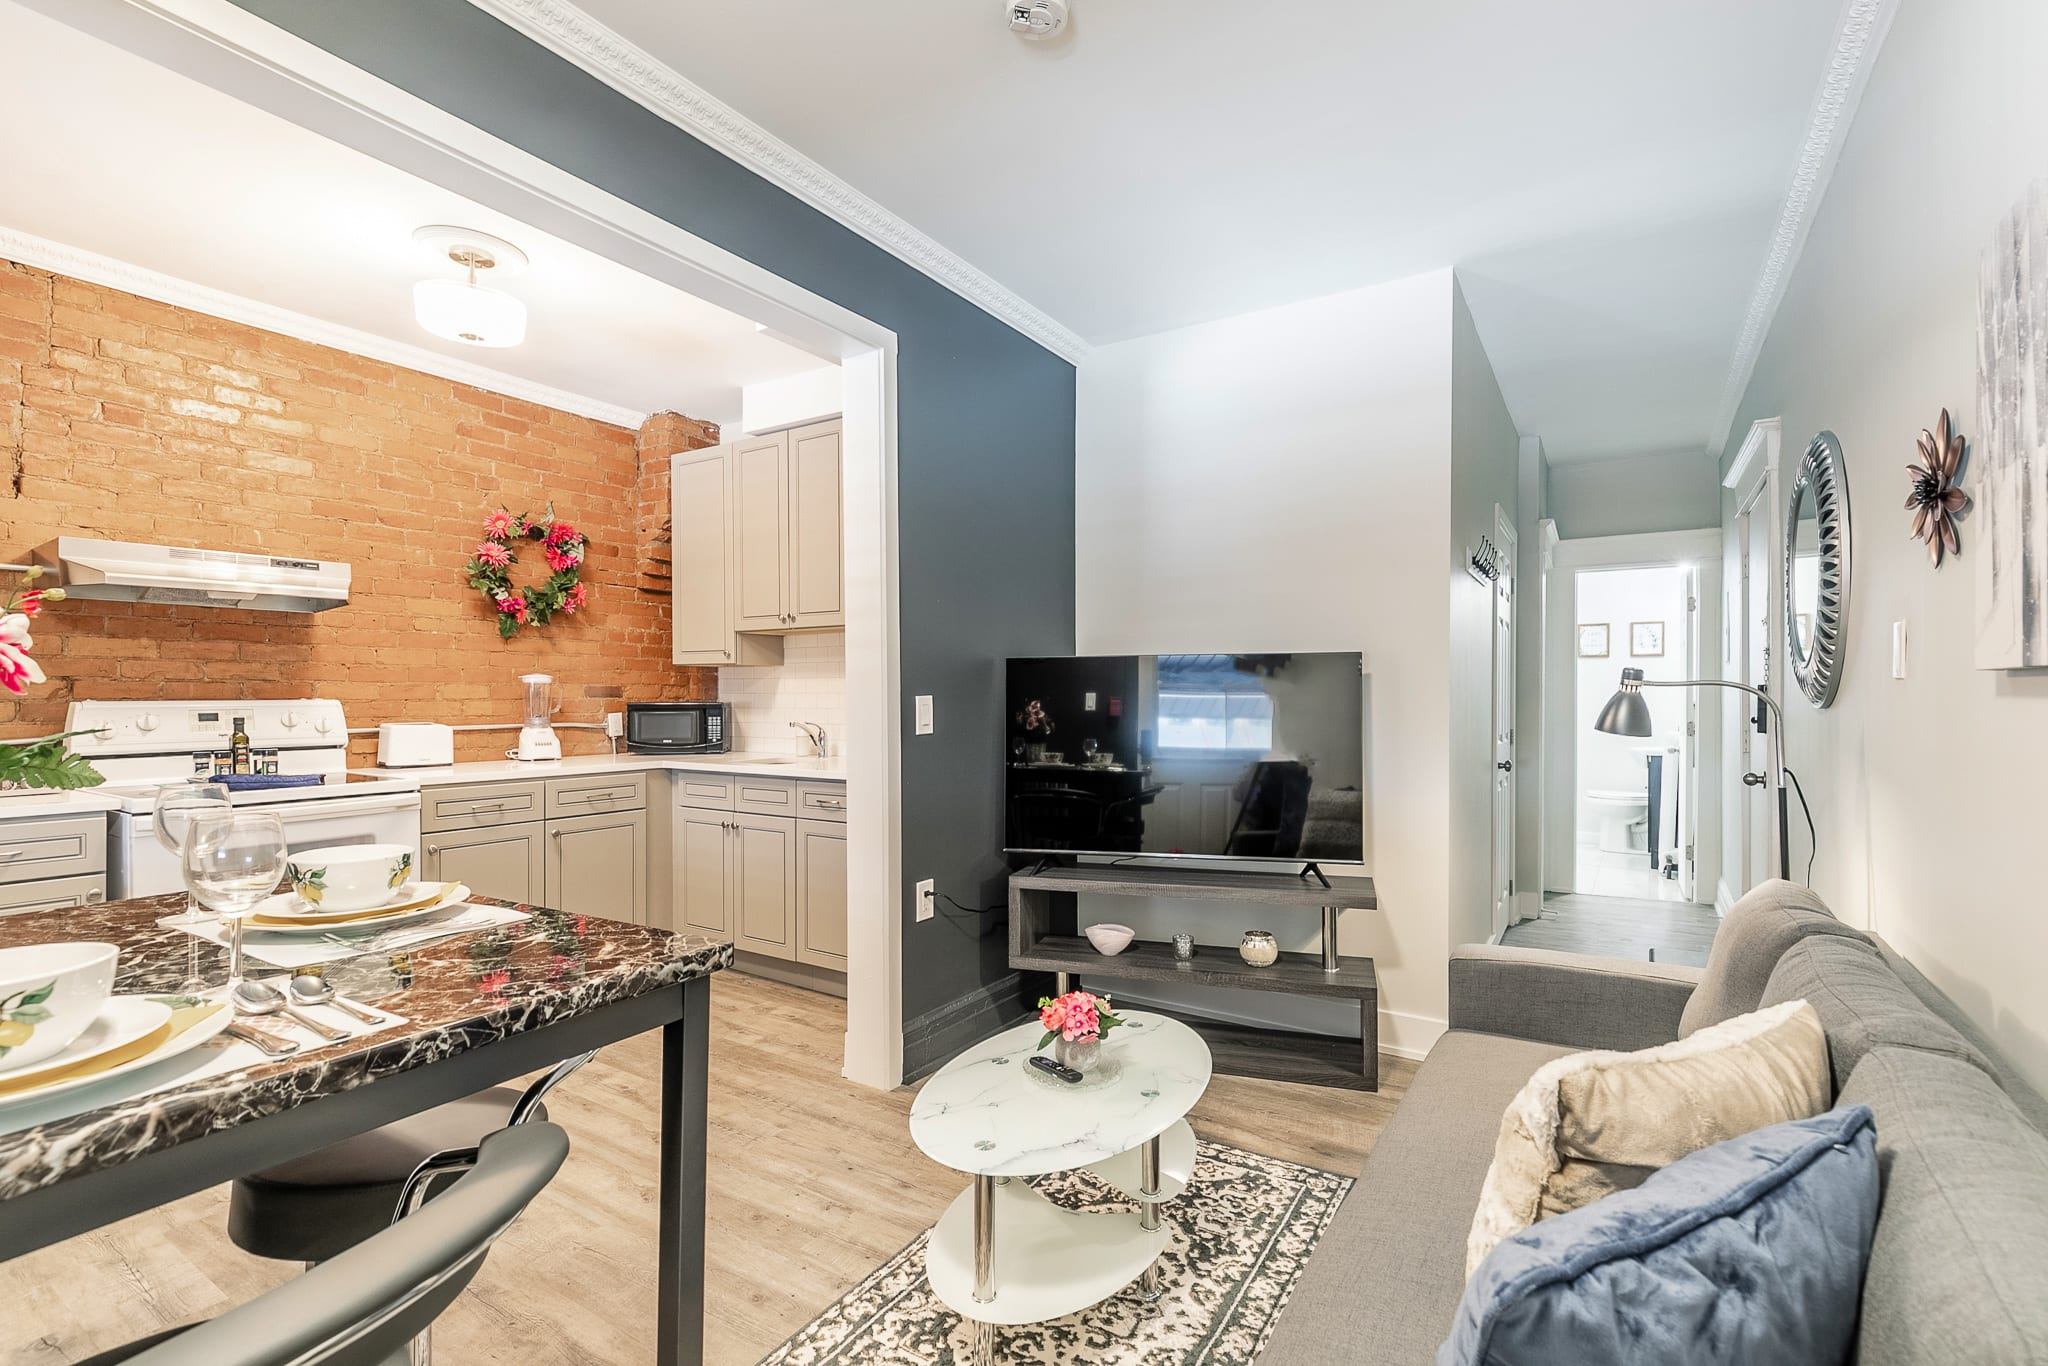 Upscale 2BR with King Bed - Brand New - PRIME Location